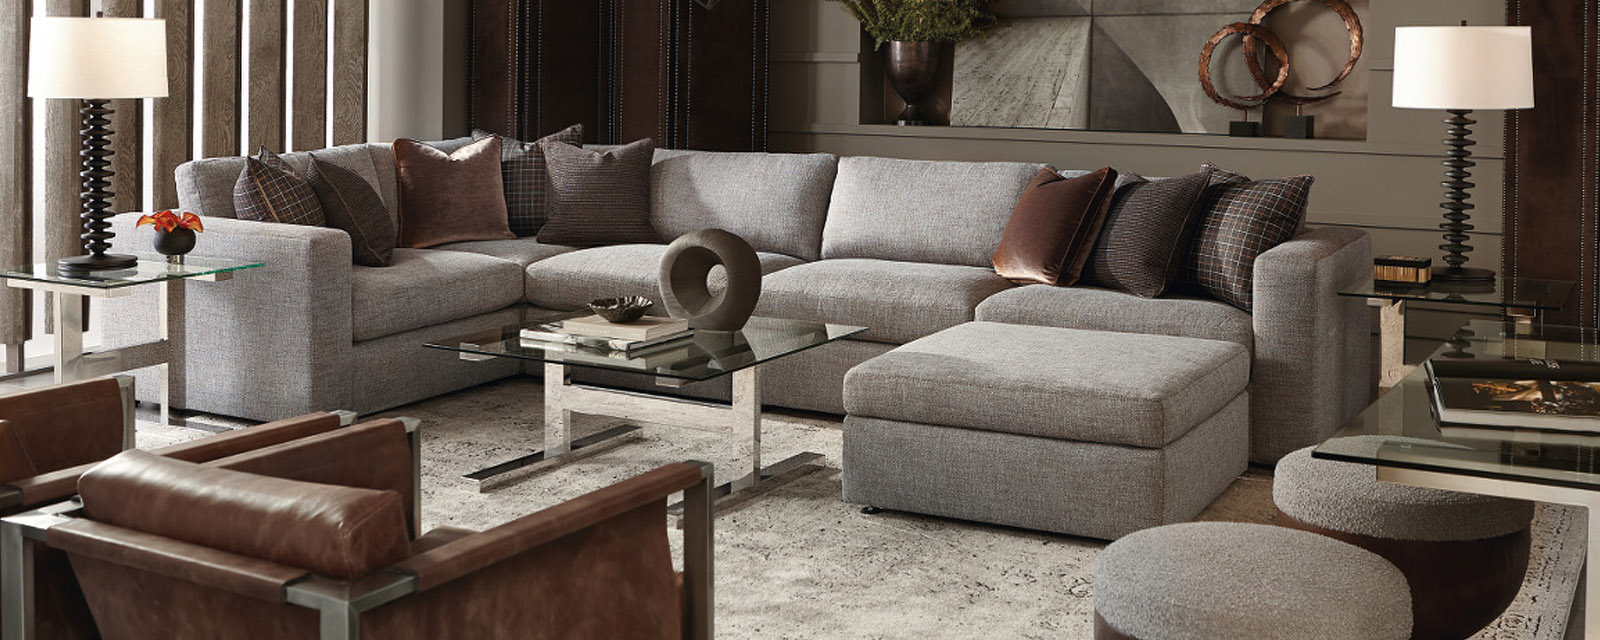 Where To Find Modern Furniture in Calgary?